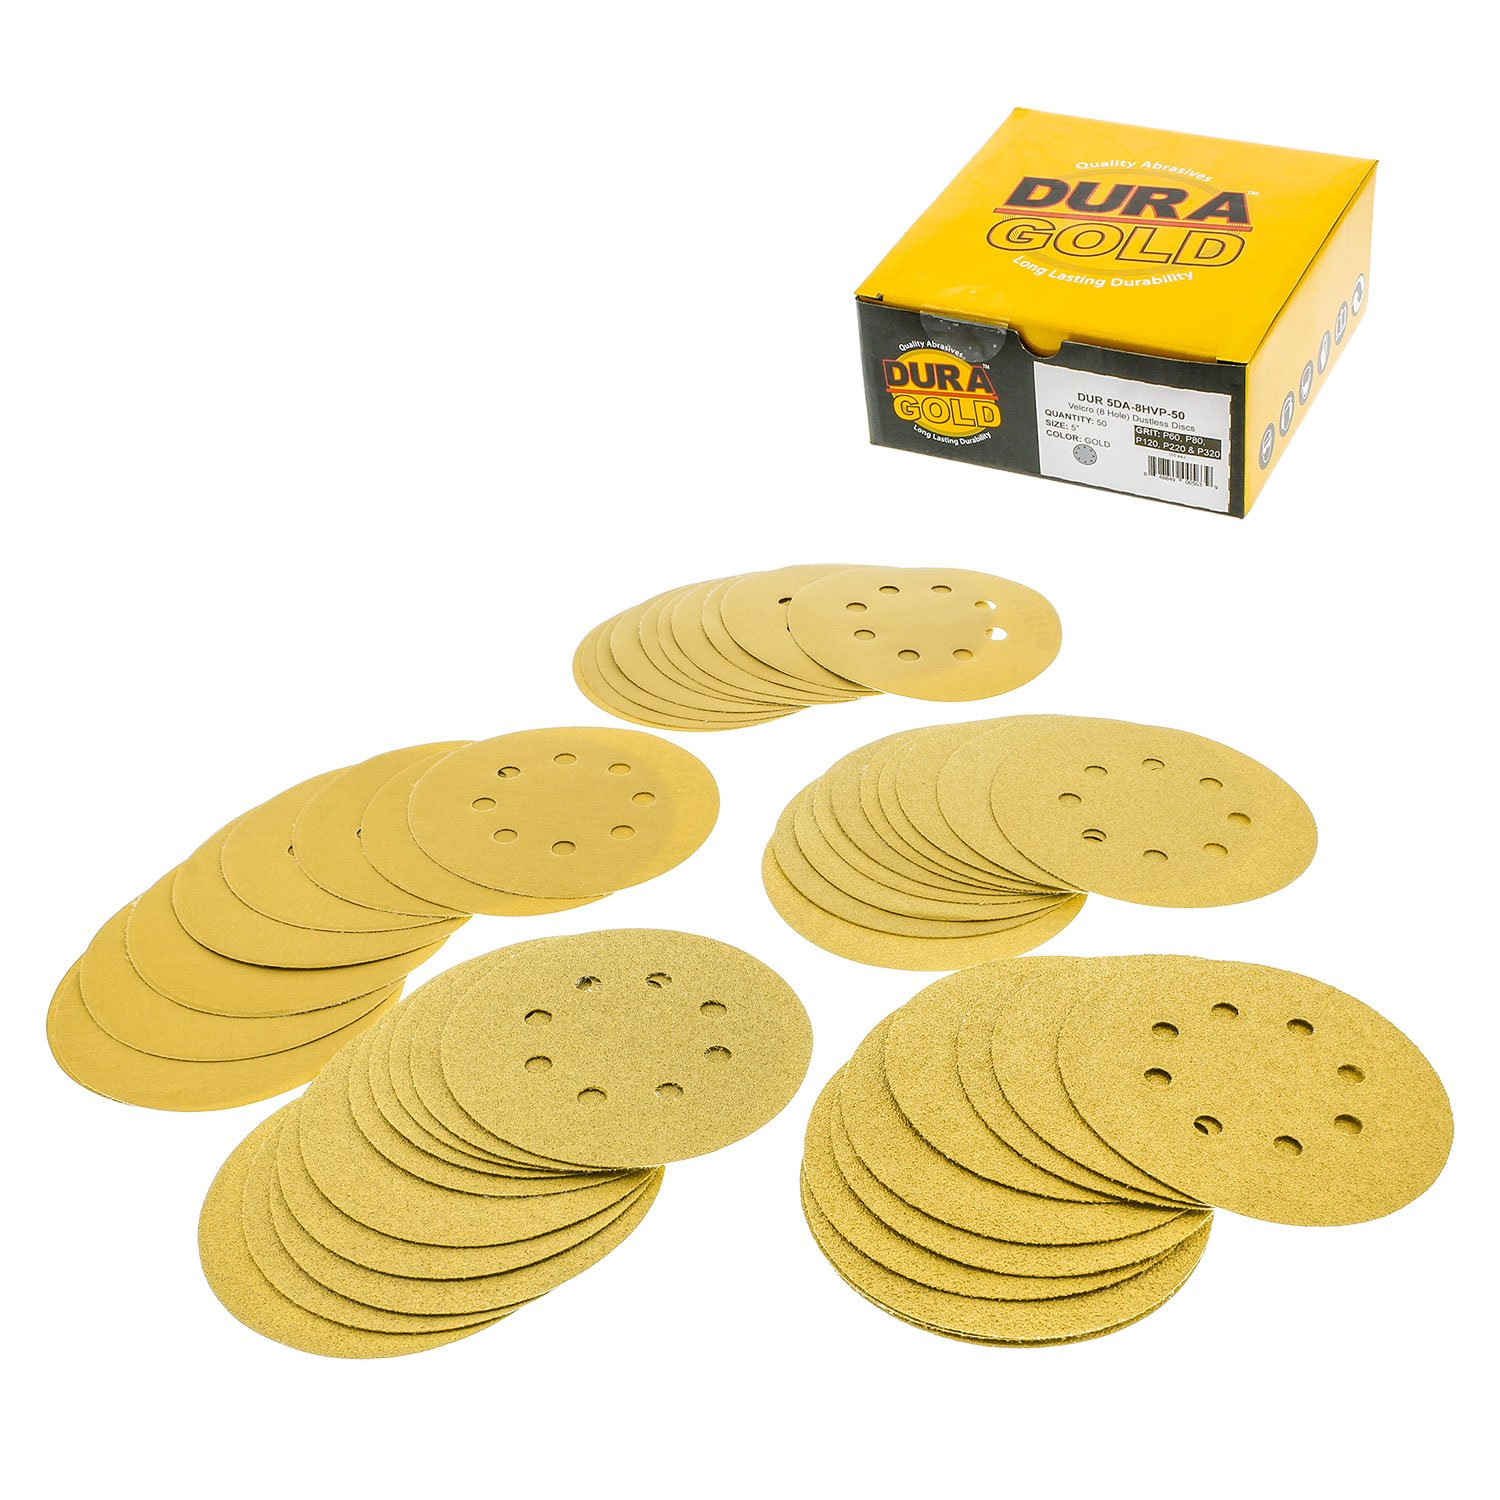 """Dura-Gold Premium - Variety Pack - 5"""" Gold Sanding Discs - 8-Hole Dustless Hook and Loop - 10 each of Grit (60, 80, 120, 220, 320) -Box of 50 Sandpaper Finishing Discs for Woodworking or Automotive"""